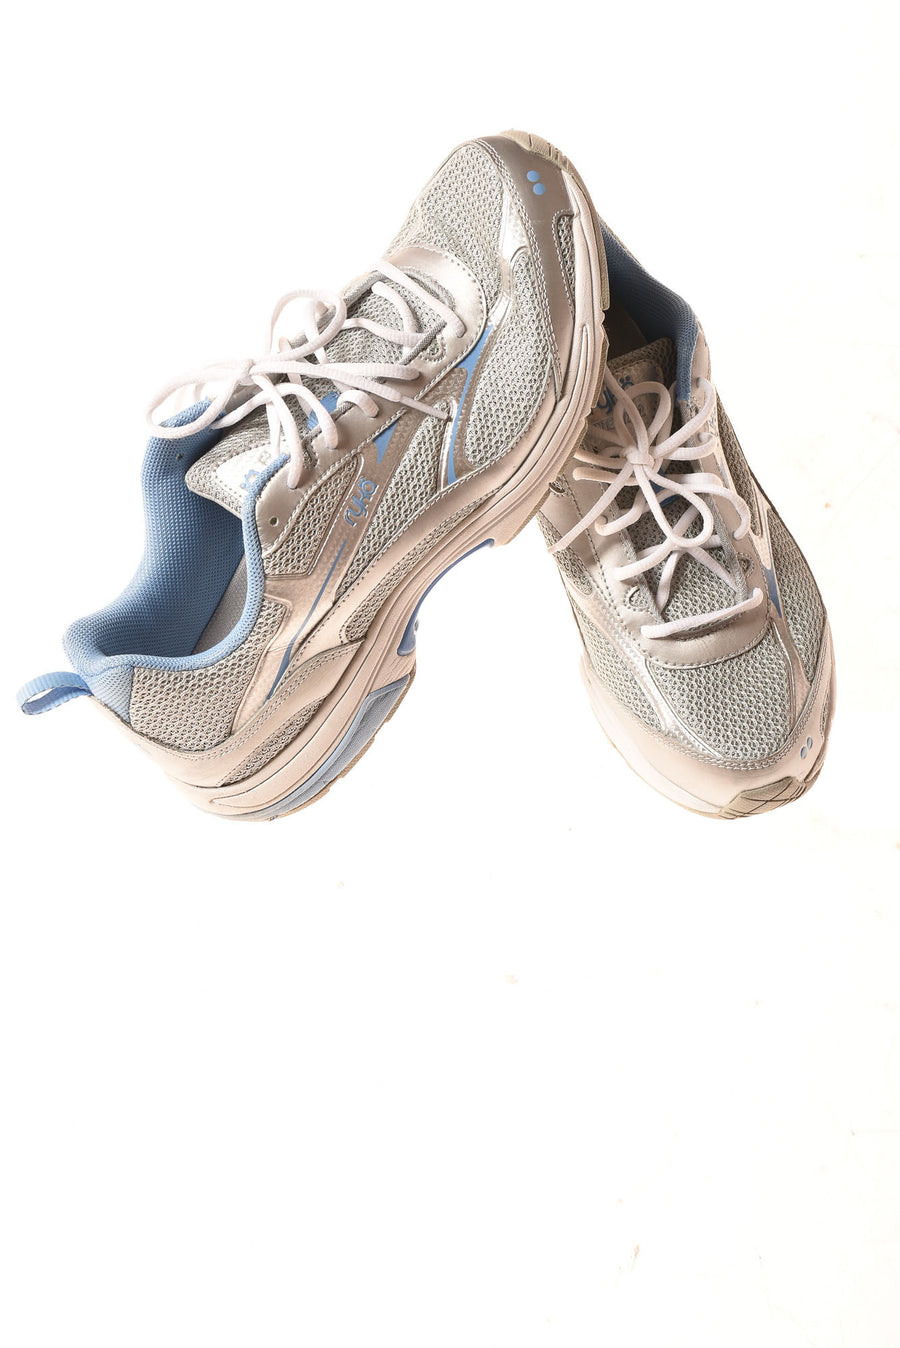 USED Ryka International Women's Shoes 11 Blue & Gray